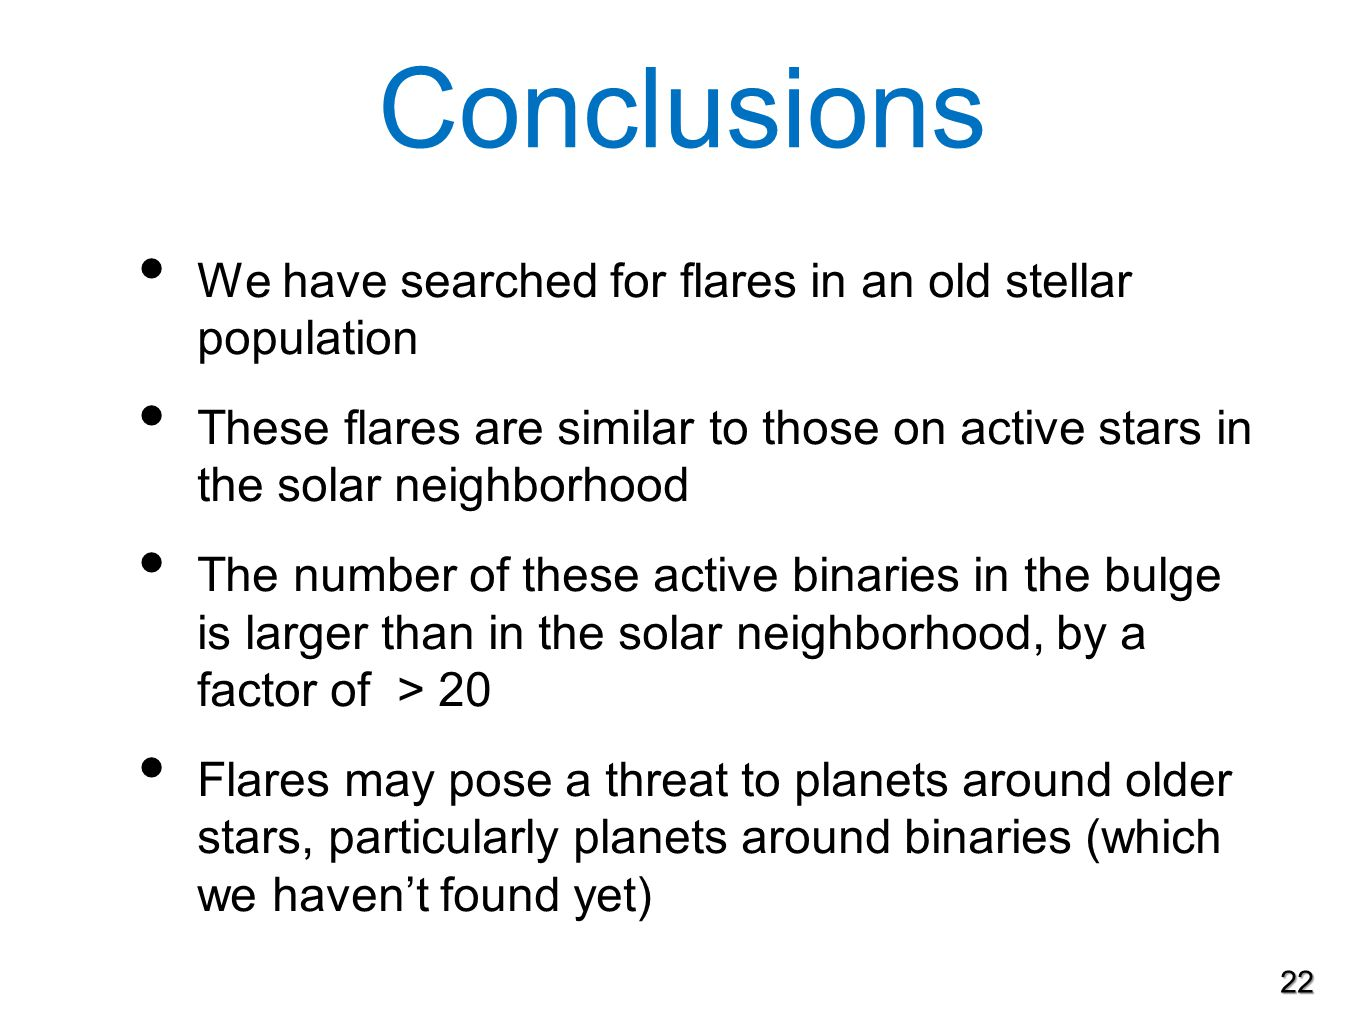 Conclusions We have searched for flares in an old stellar population These flares are similar to those on active stars in the solar neighborhood The number of these active binaries in the bulge is larger than in the solar neighborhood, by a factor of > 20 Flares may pose a threat to planets around older stars, particularly planets around binaries (which we haven't found yet) 22